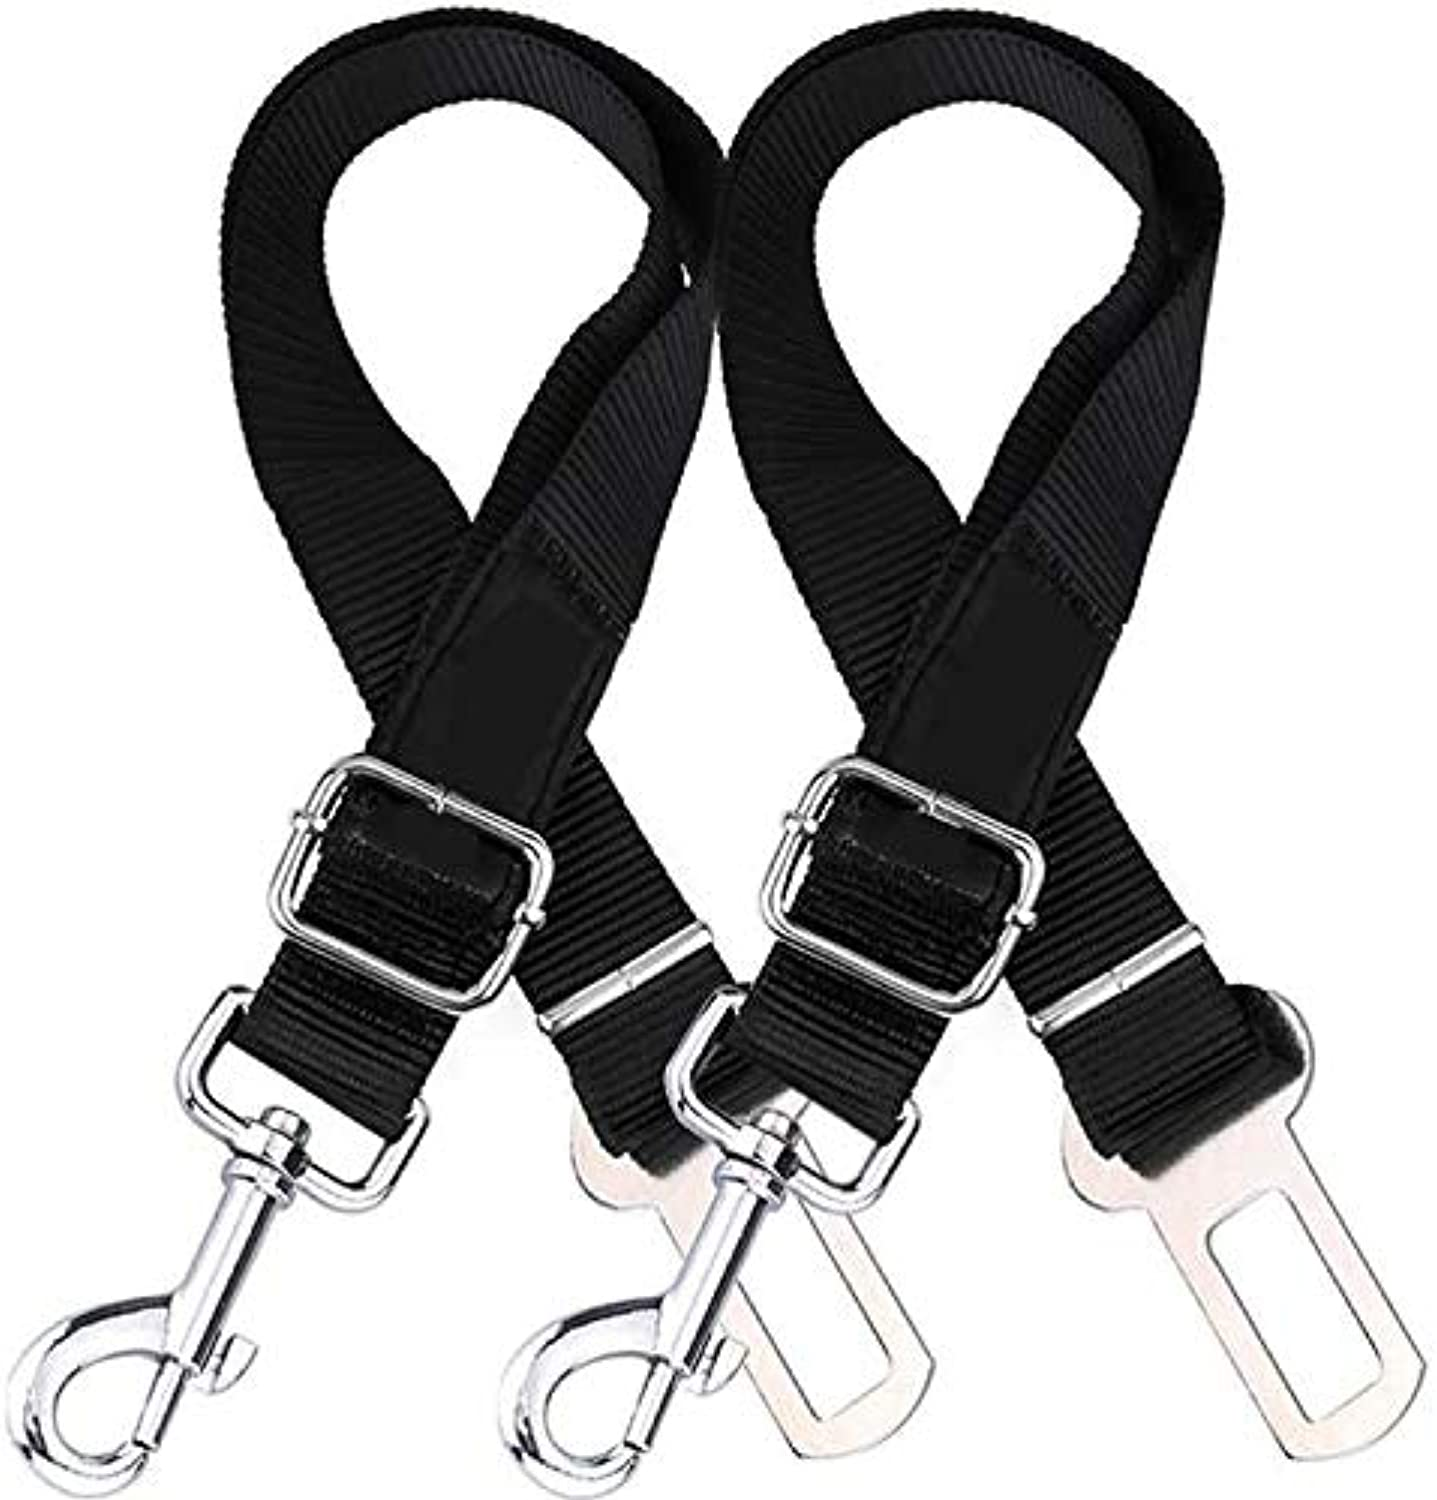 2 Packs Adjustable Pet Dog Cat 2019Car Seat Belt Safety Leads Vehicle Seatbelt Harness Auto Traction Pet Dog Supplies,Black